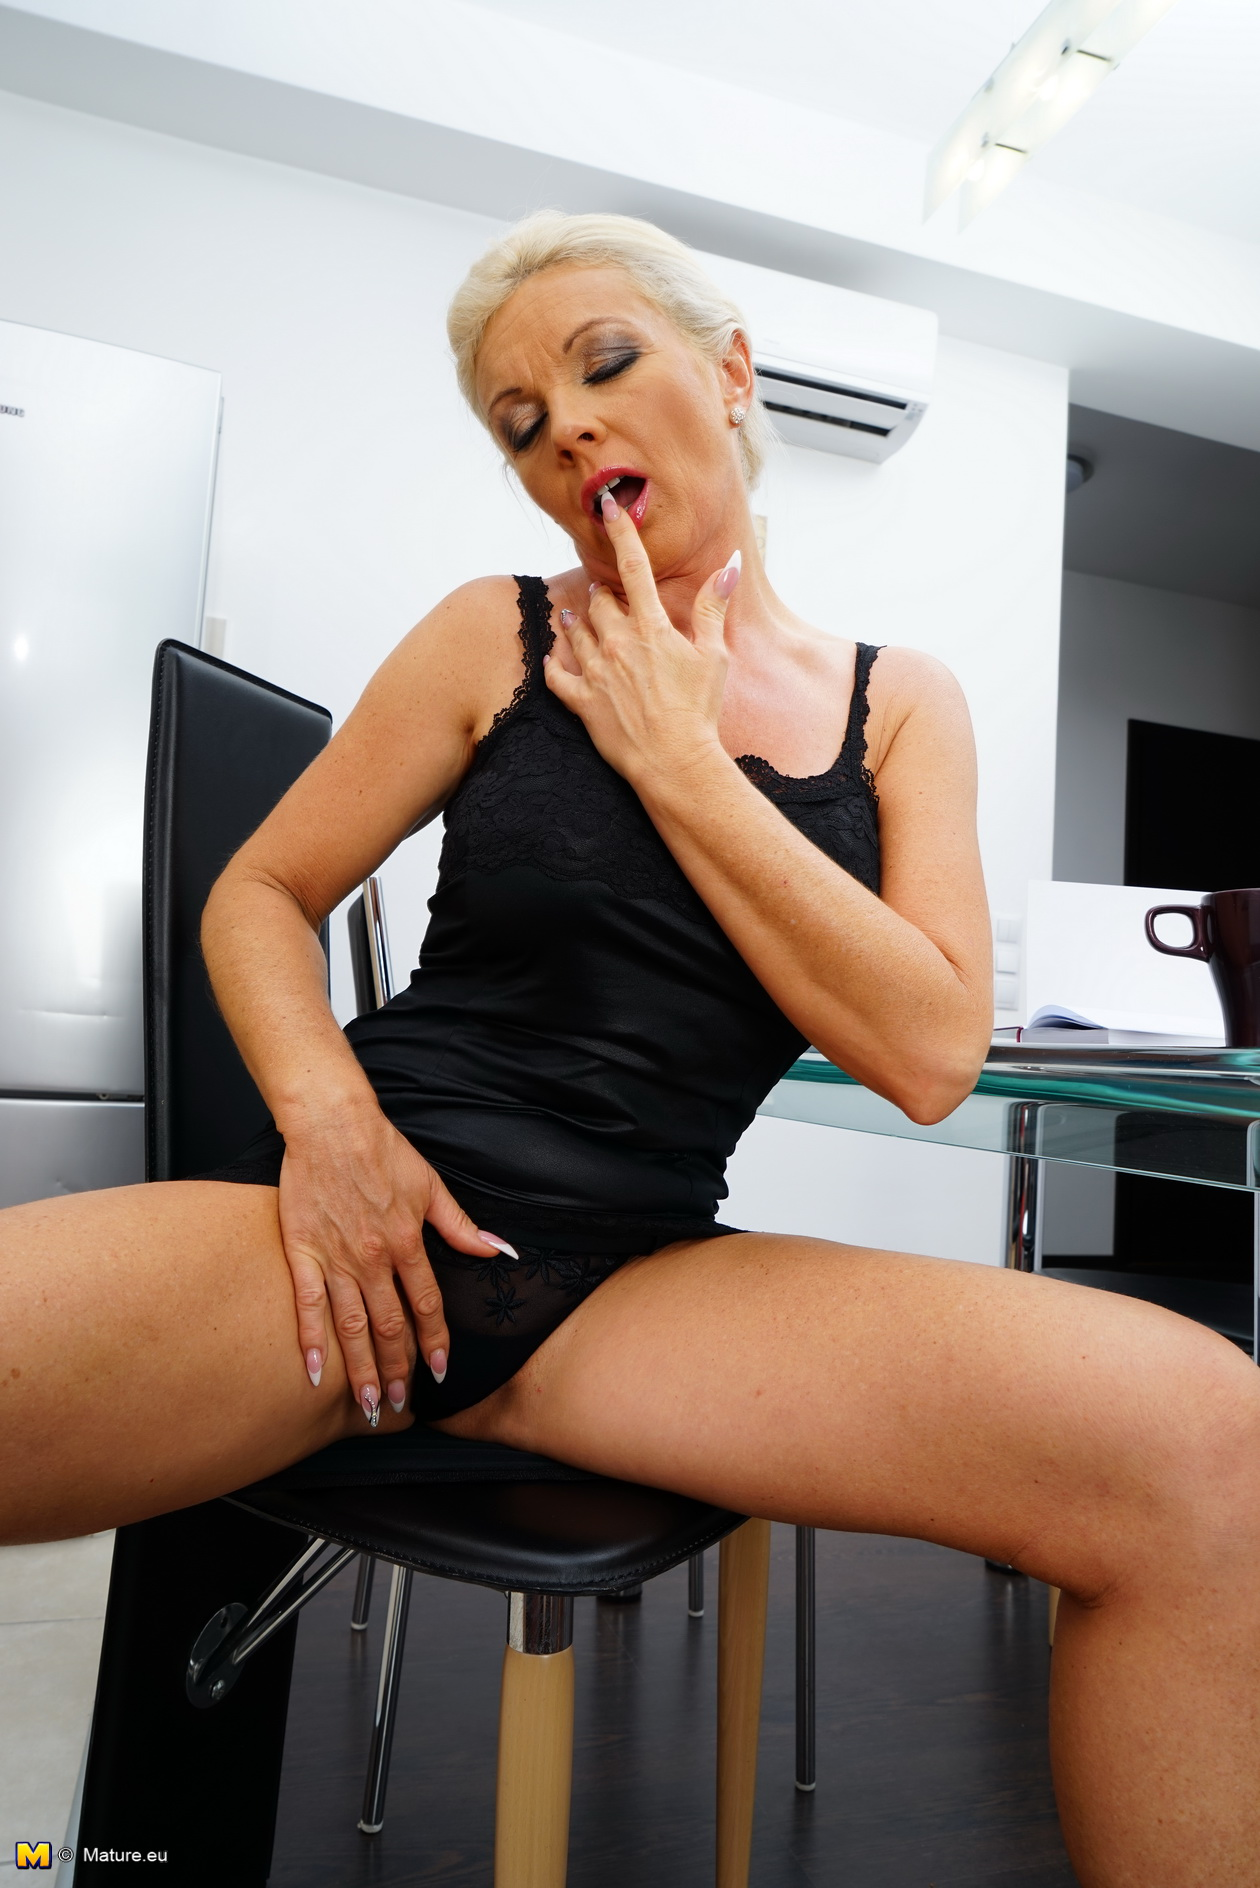 Naughty housewife playing with her raw cooch